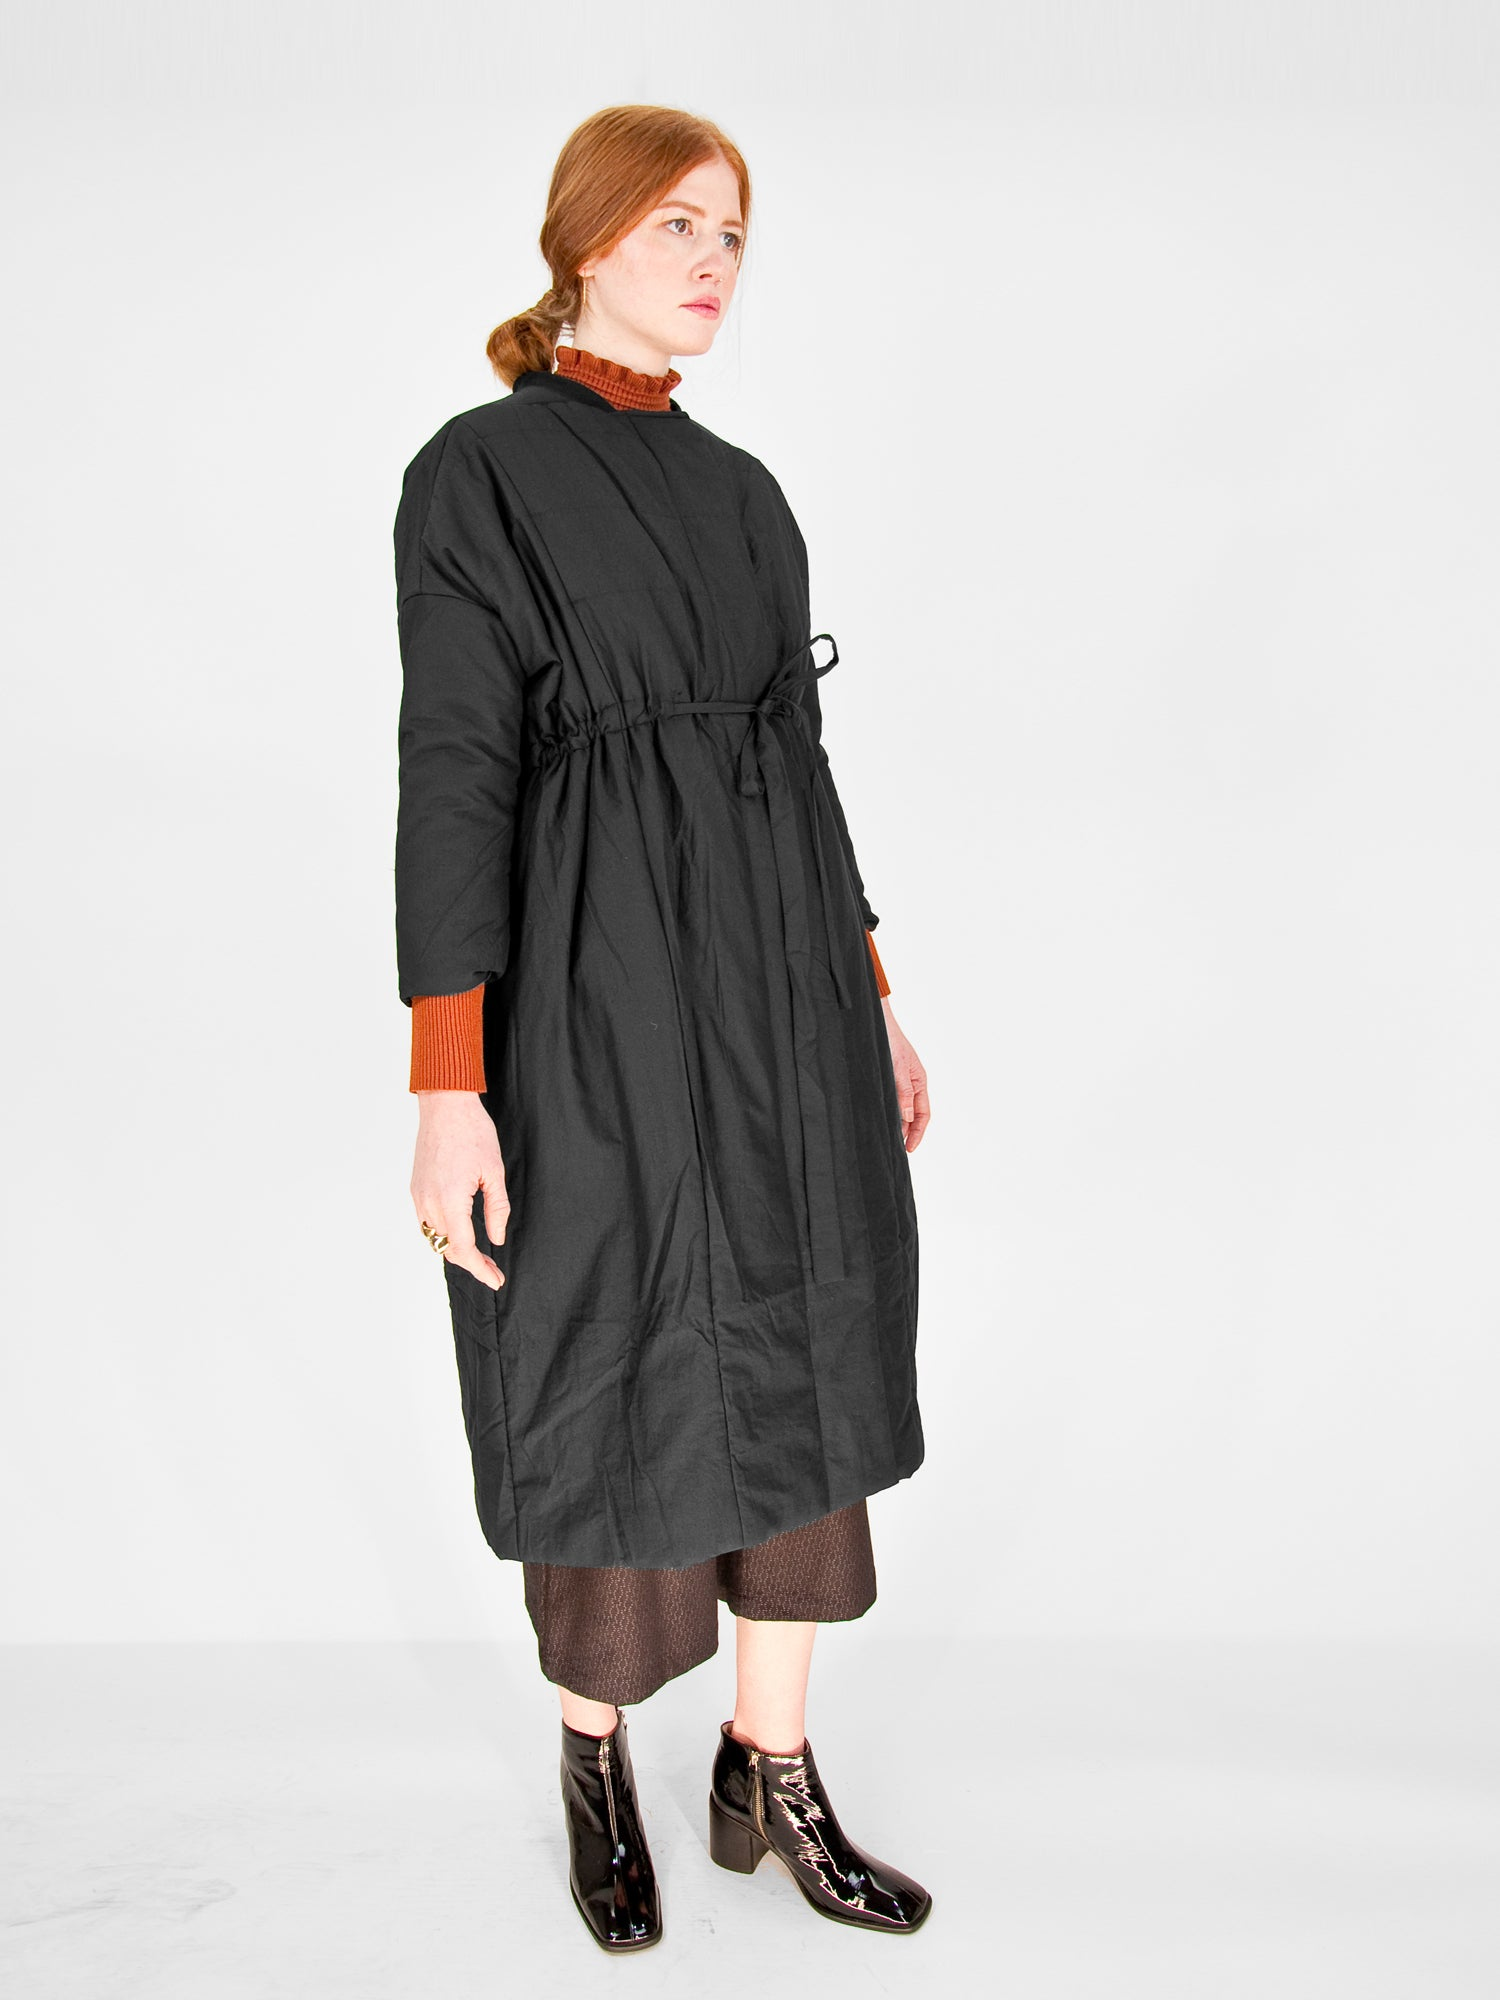 Intentionally Blank - DASH Car Coat / Black